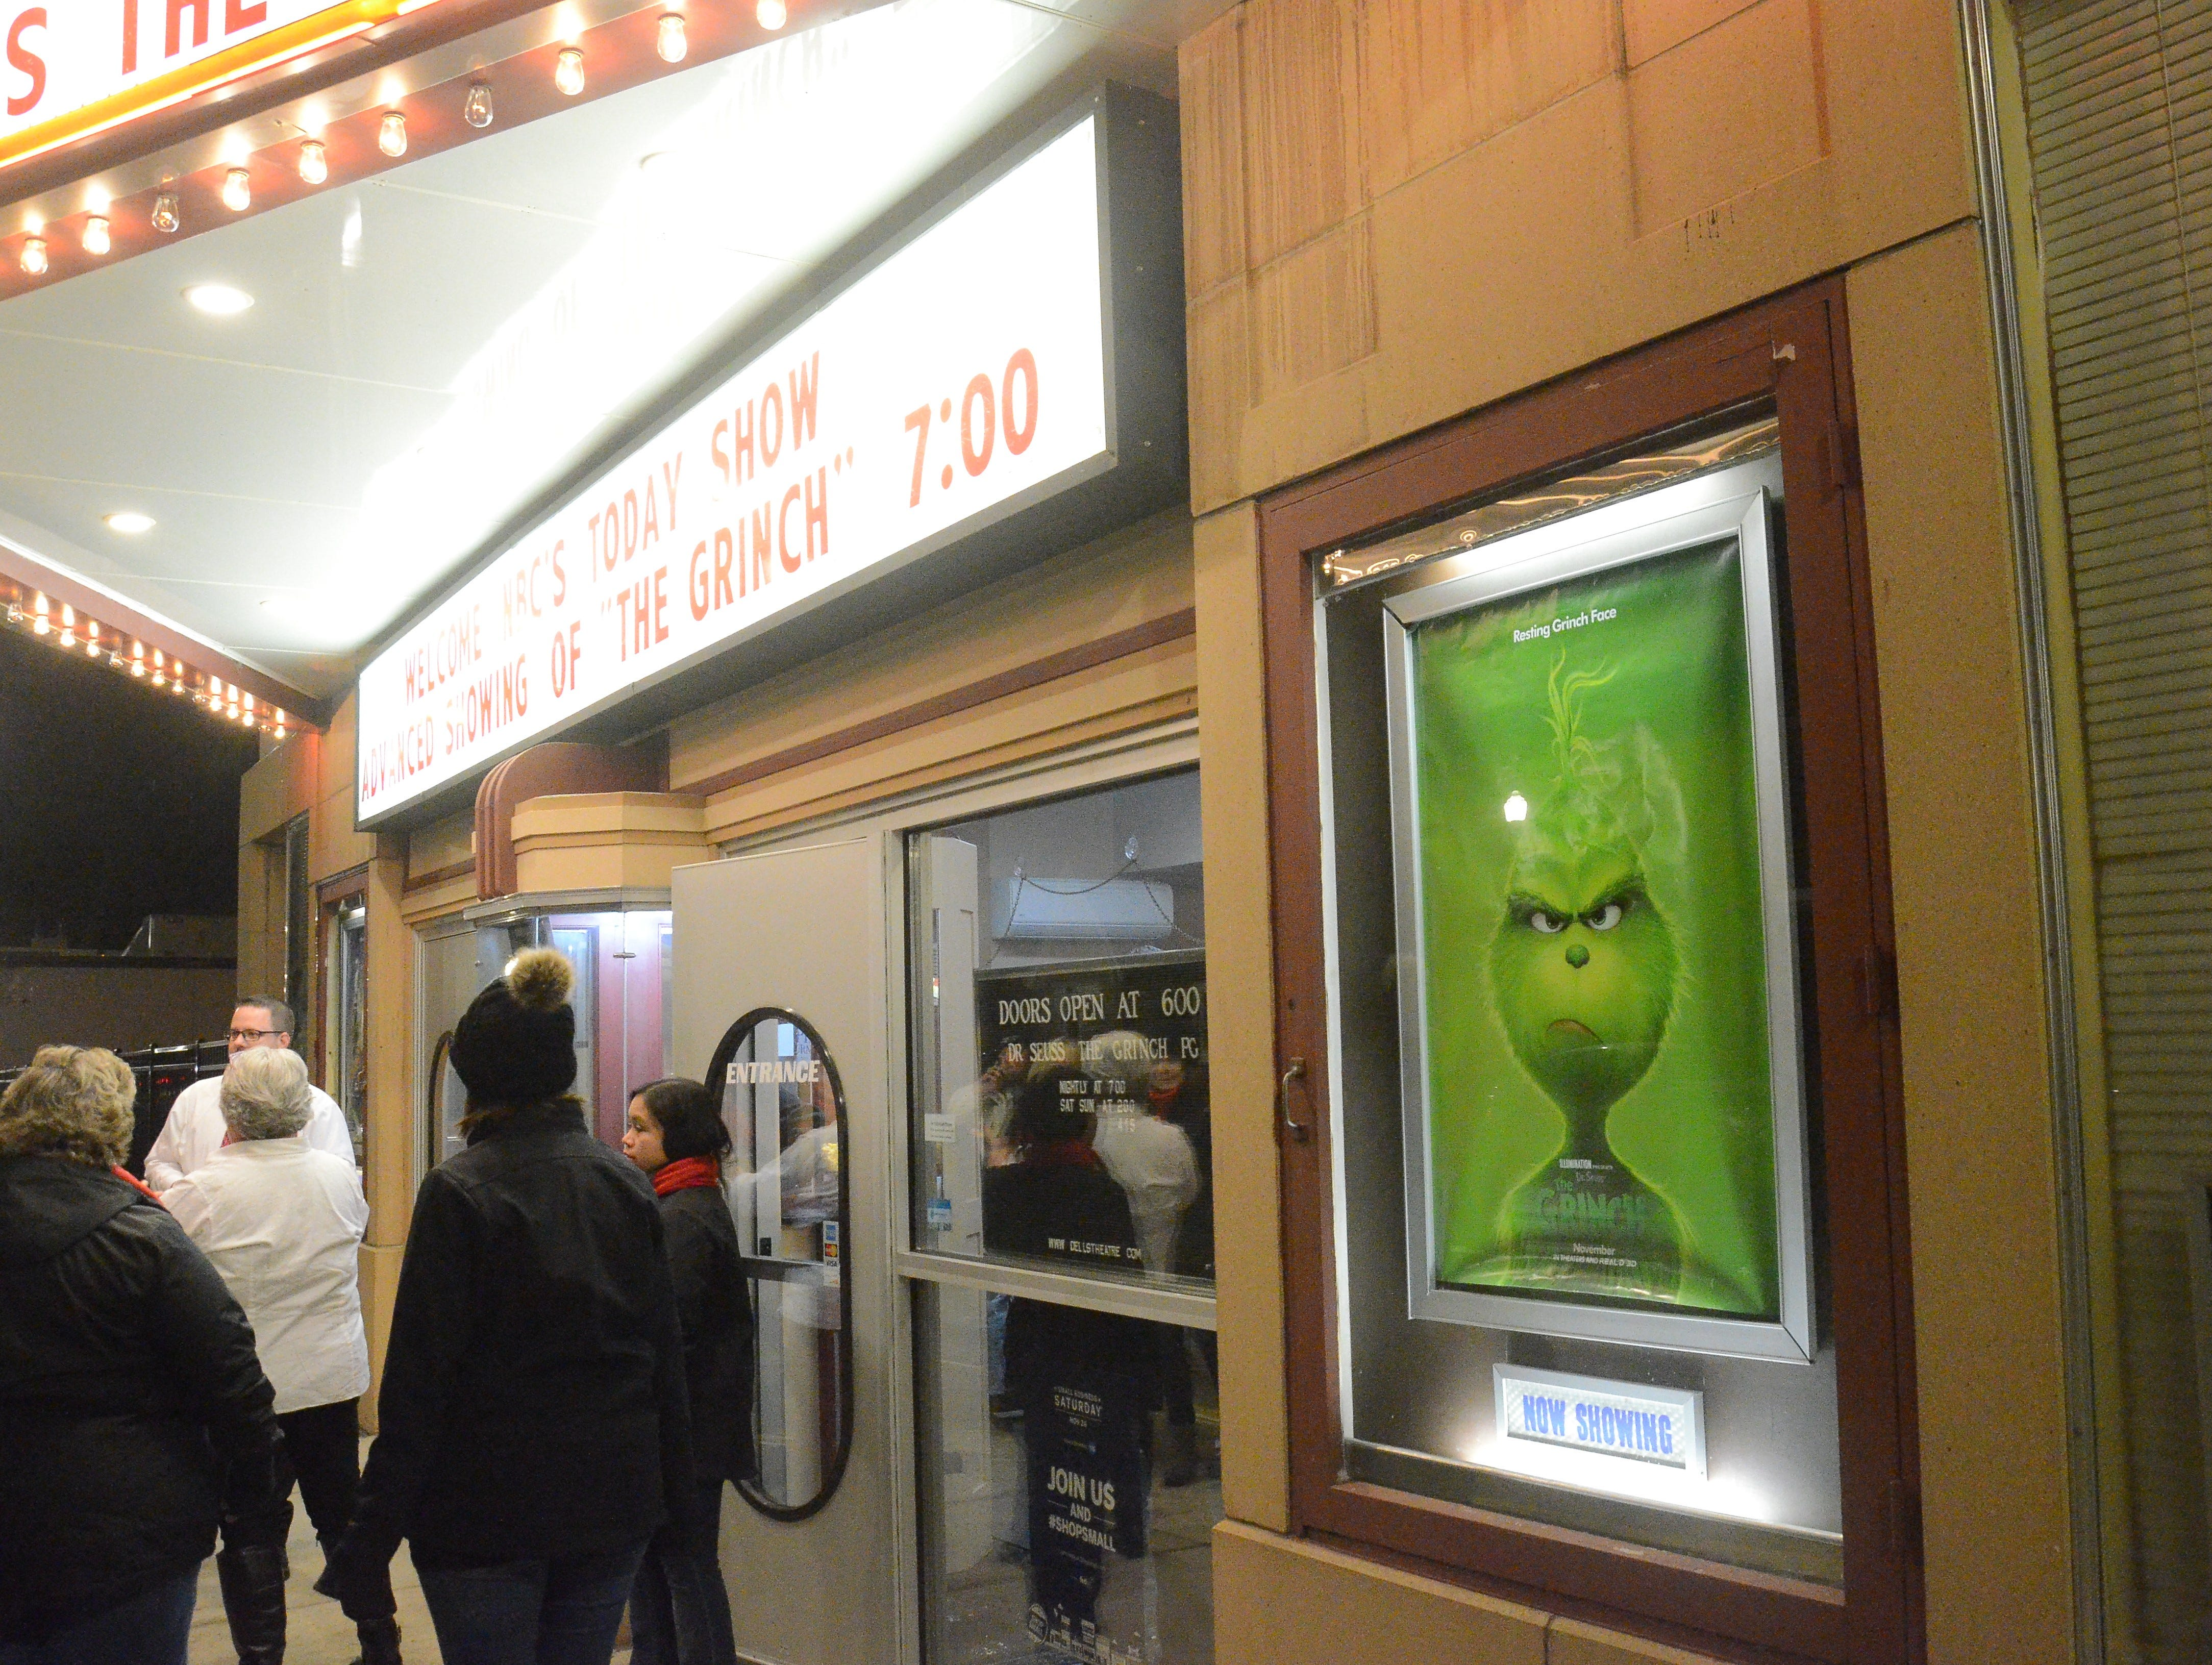 Photos: Dell Rapids Theatre welcomes 'Today Show'